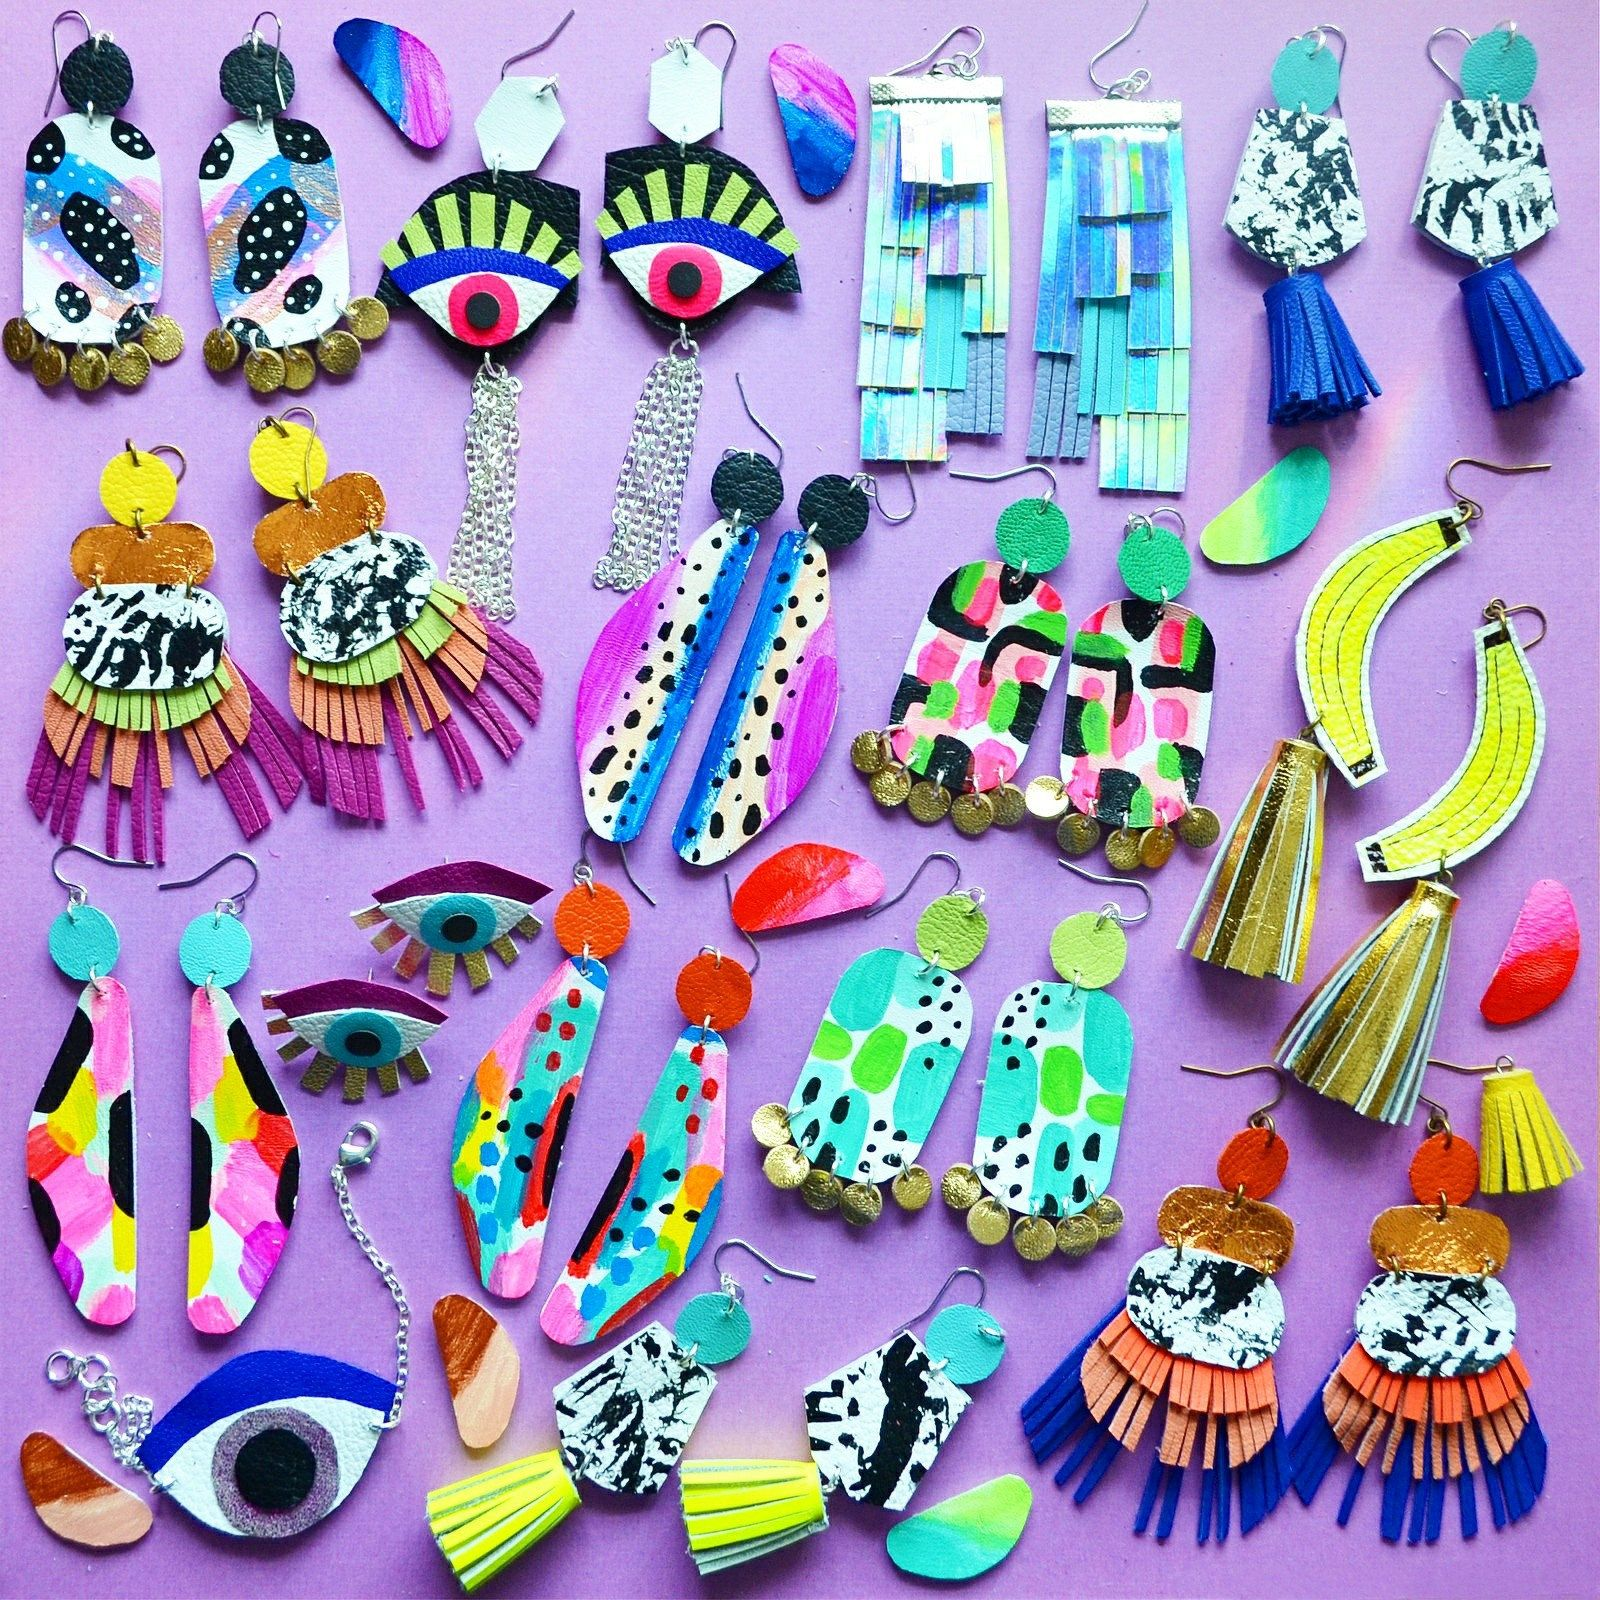 So many colorful pieces available including my new hand painted drop earrings and classics like my eye earrings! 👁👁👄👅💜💛💚💙